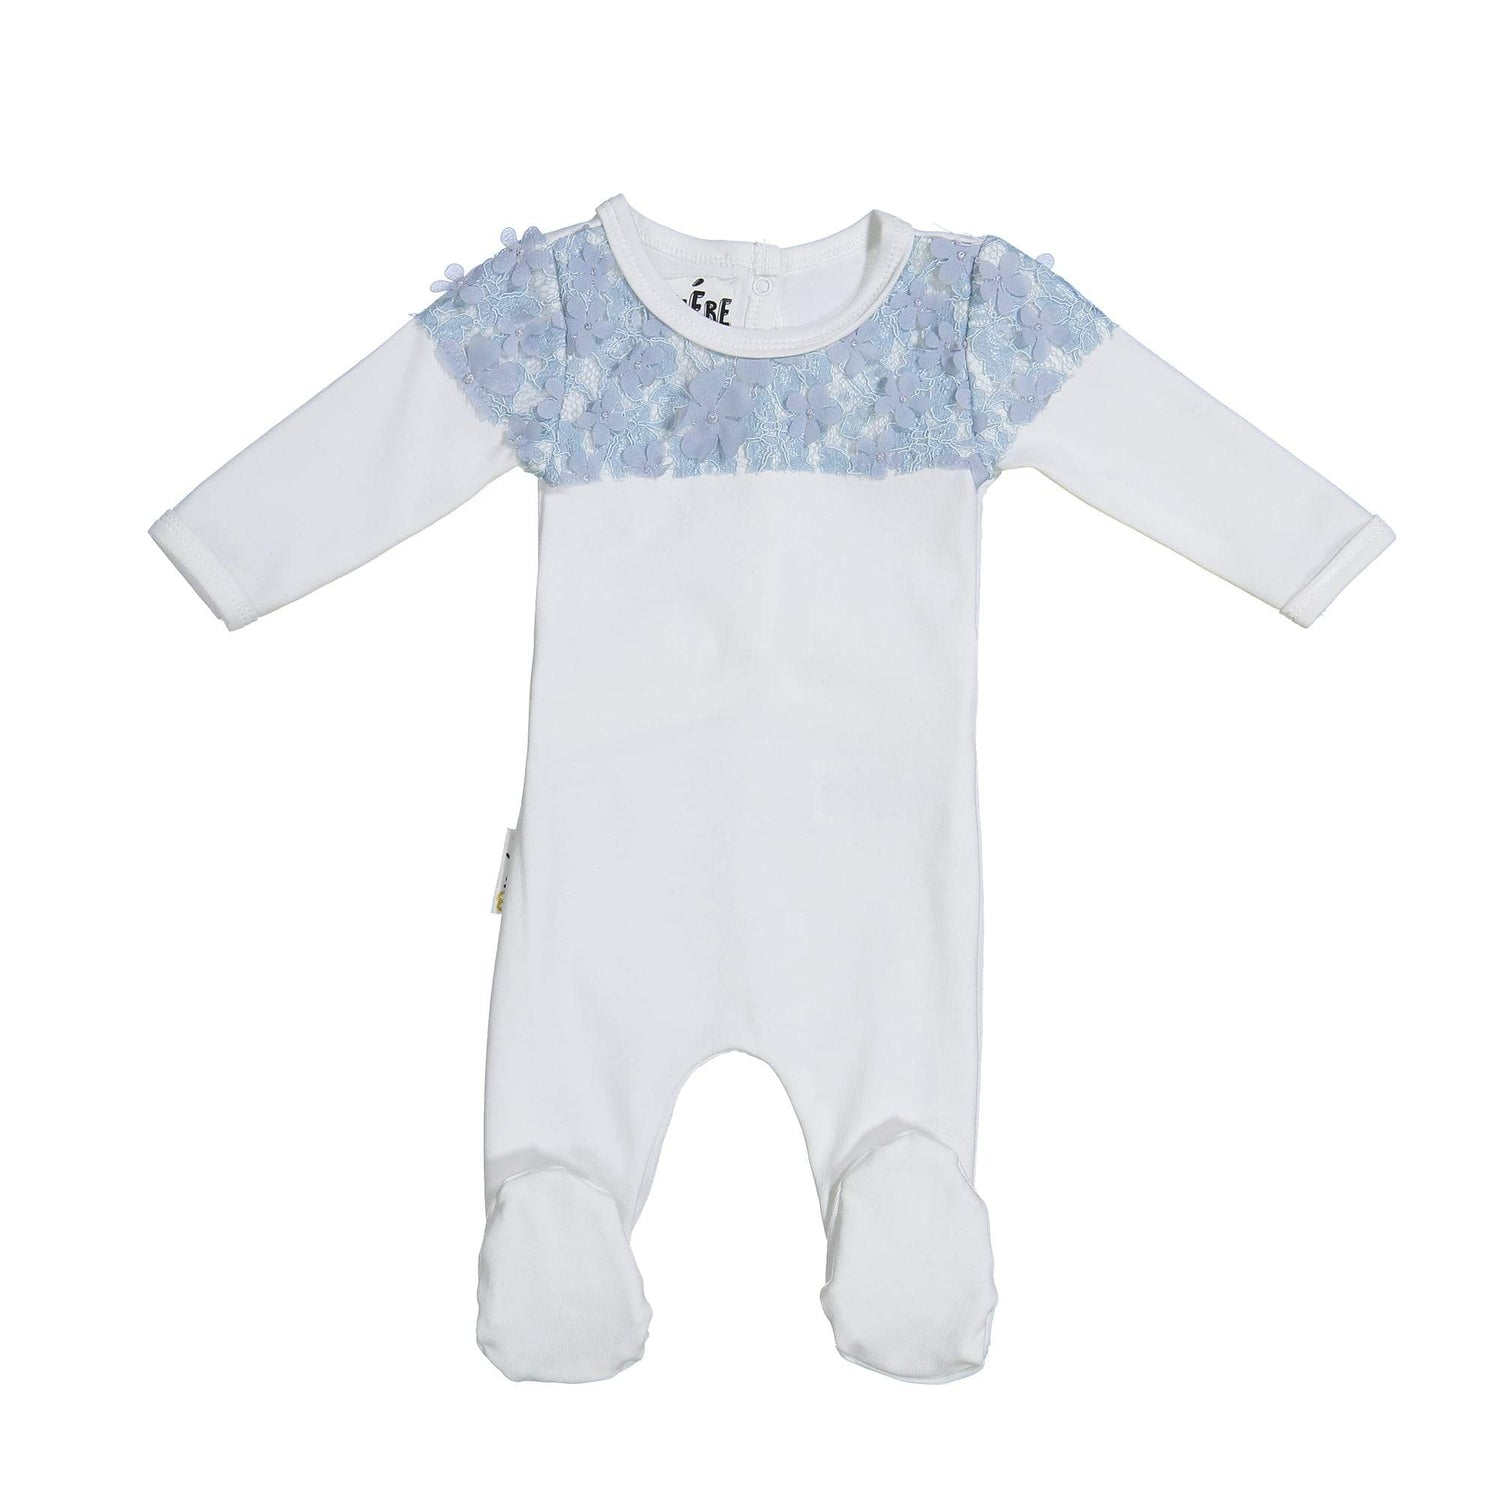 Lace Yoke Footie Maniere Accessories Blue 3 Month